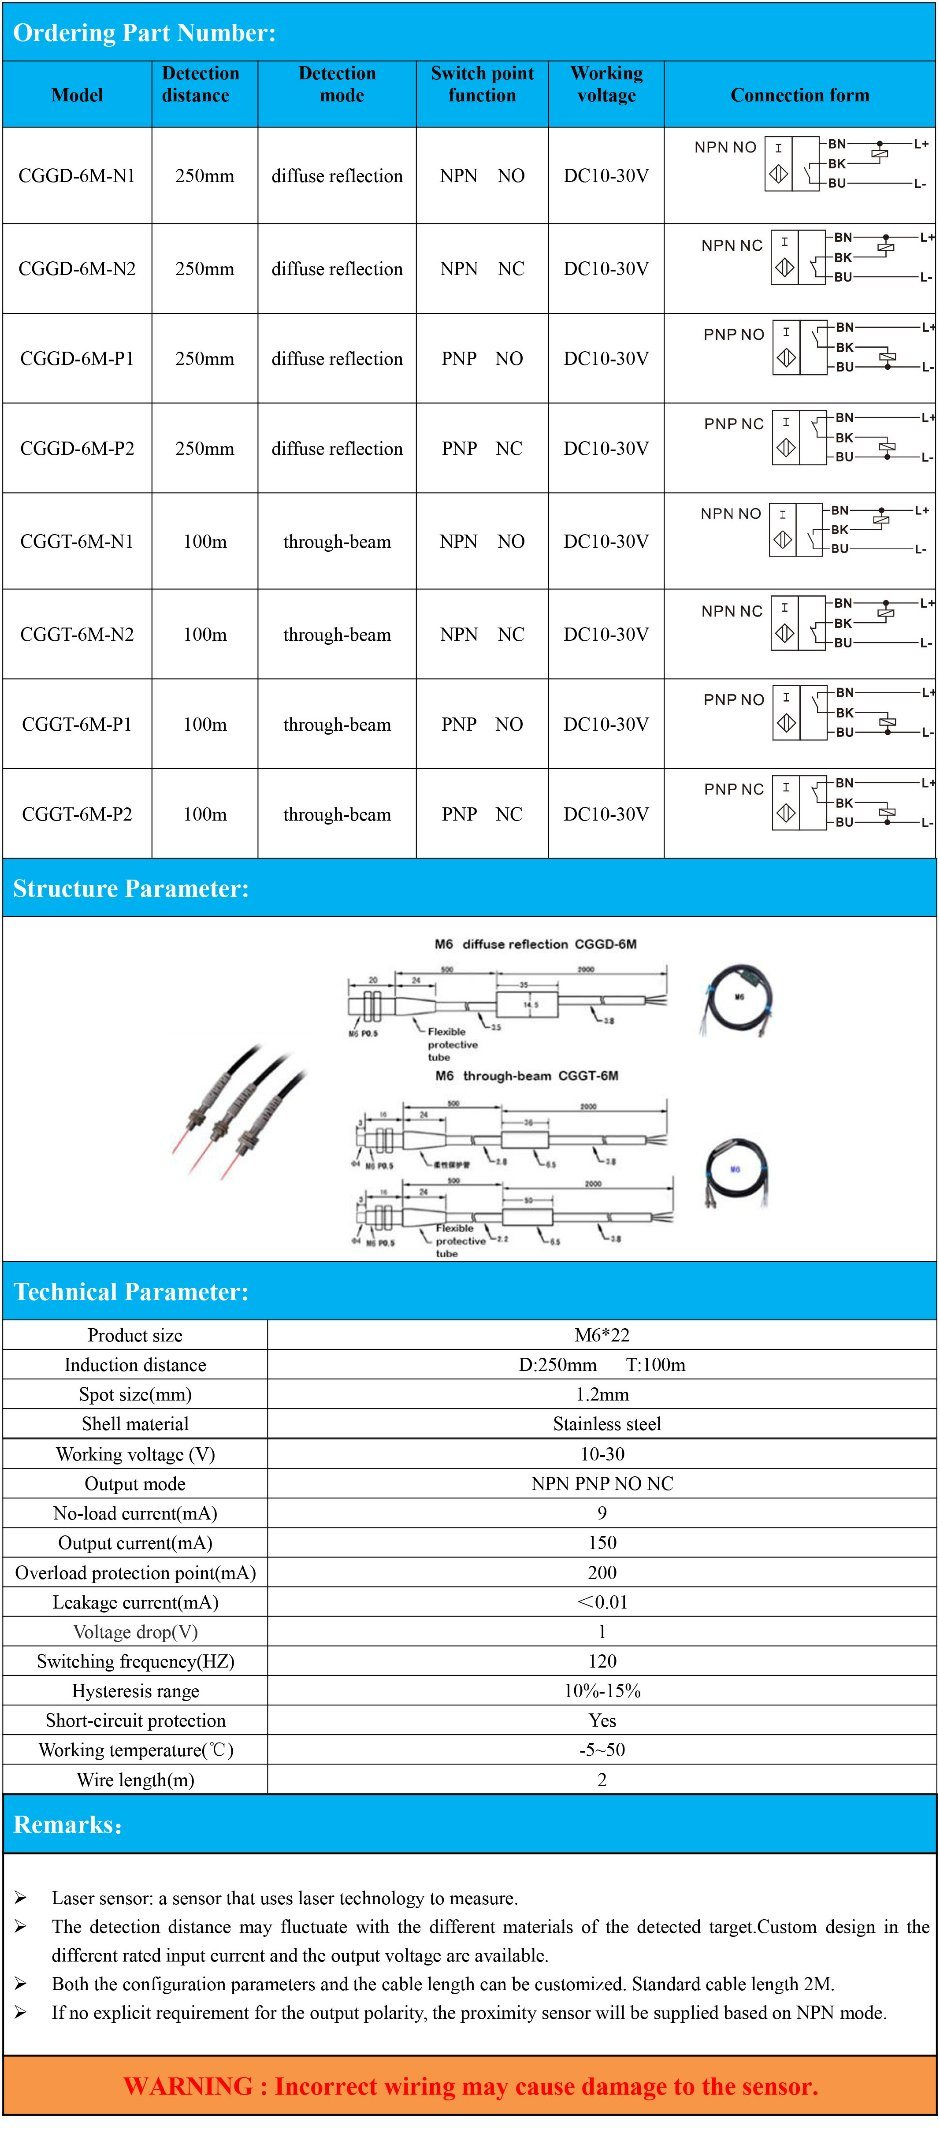 Npn Laser Sensor Wiring Schematic Diagrams Pnp Prox Switch Diagram China M6 Miniature Through Beam Reflection 100m Inductive Proximity